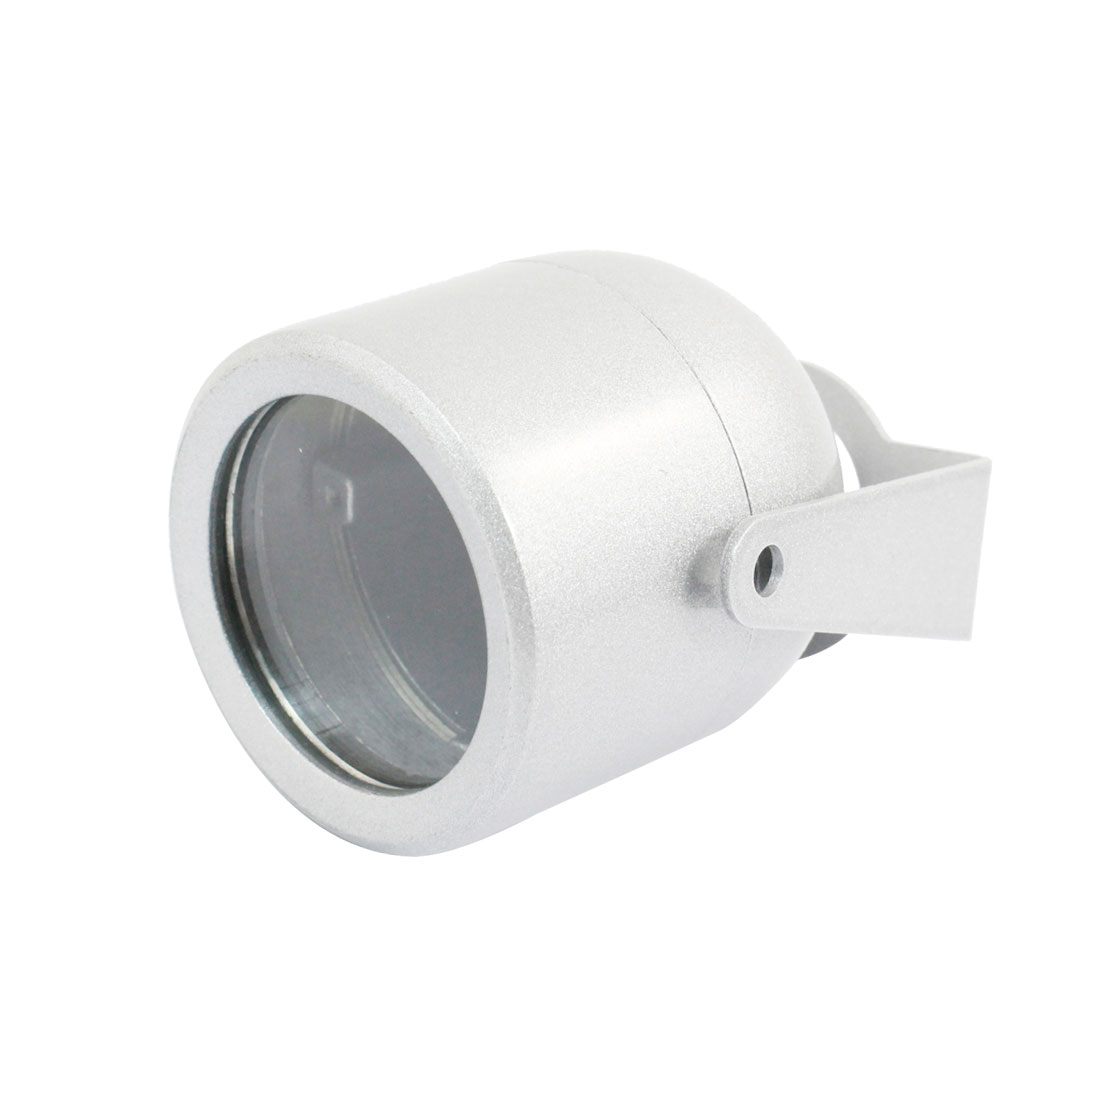 "Oval Shaped Silver Gray Metal CCTV Camera Housing Case 2.5"" High"